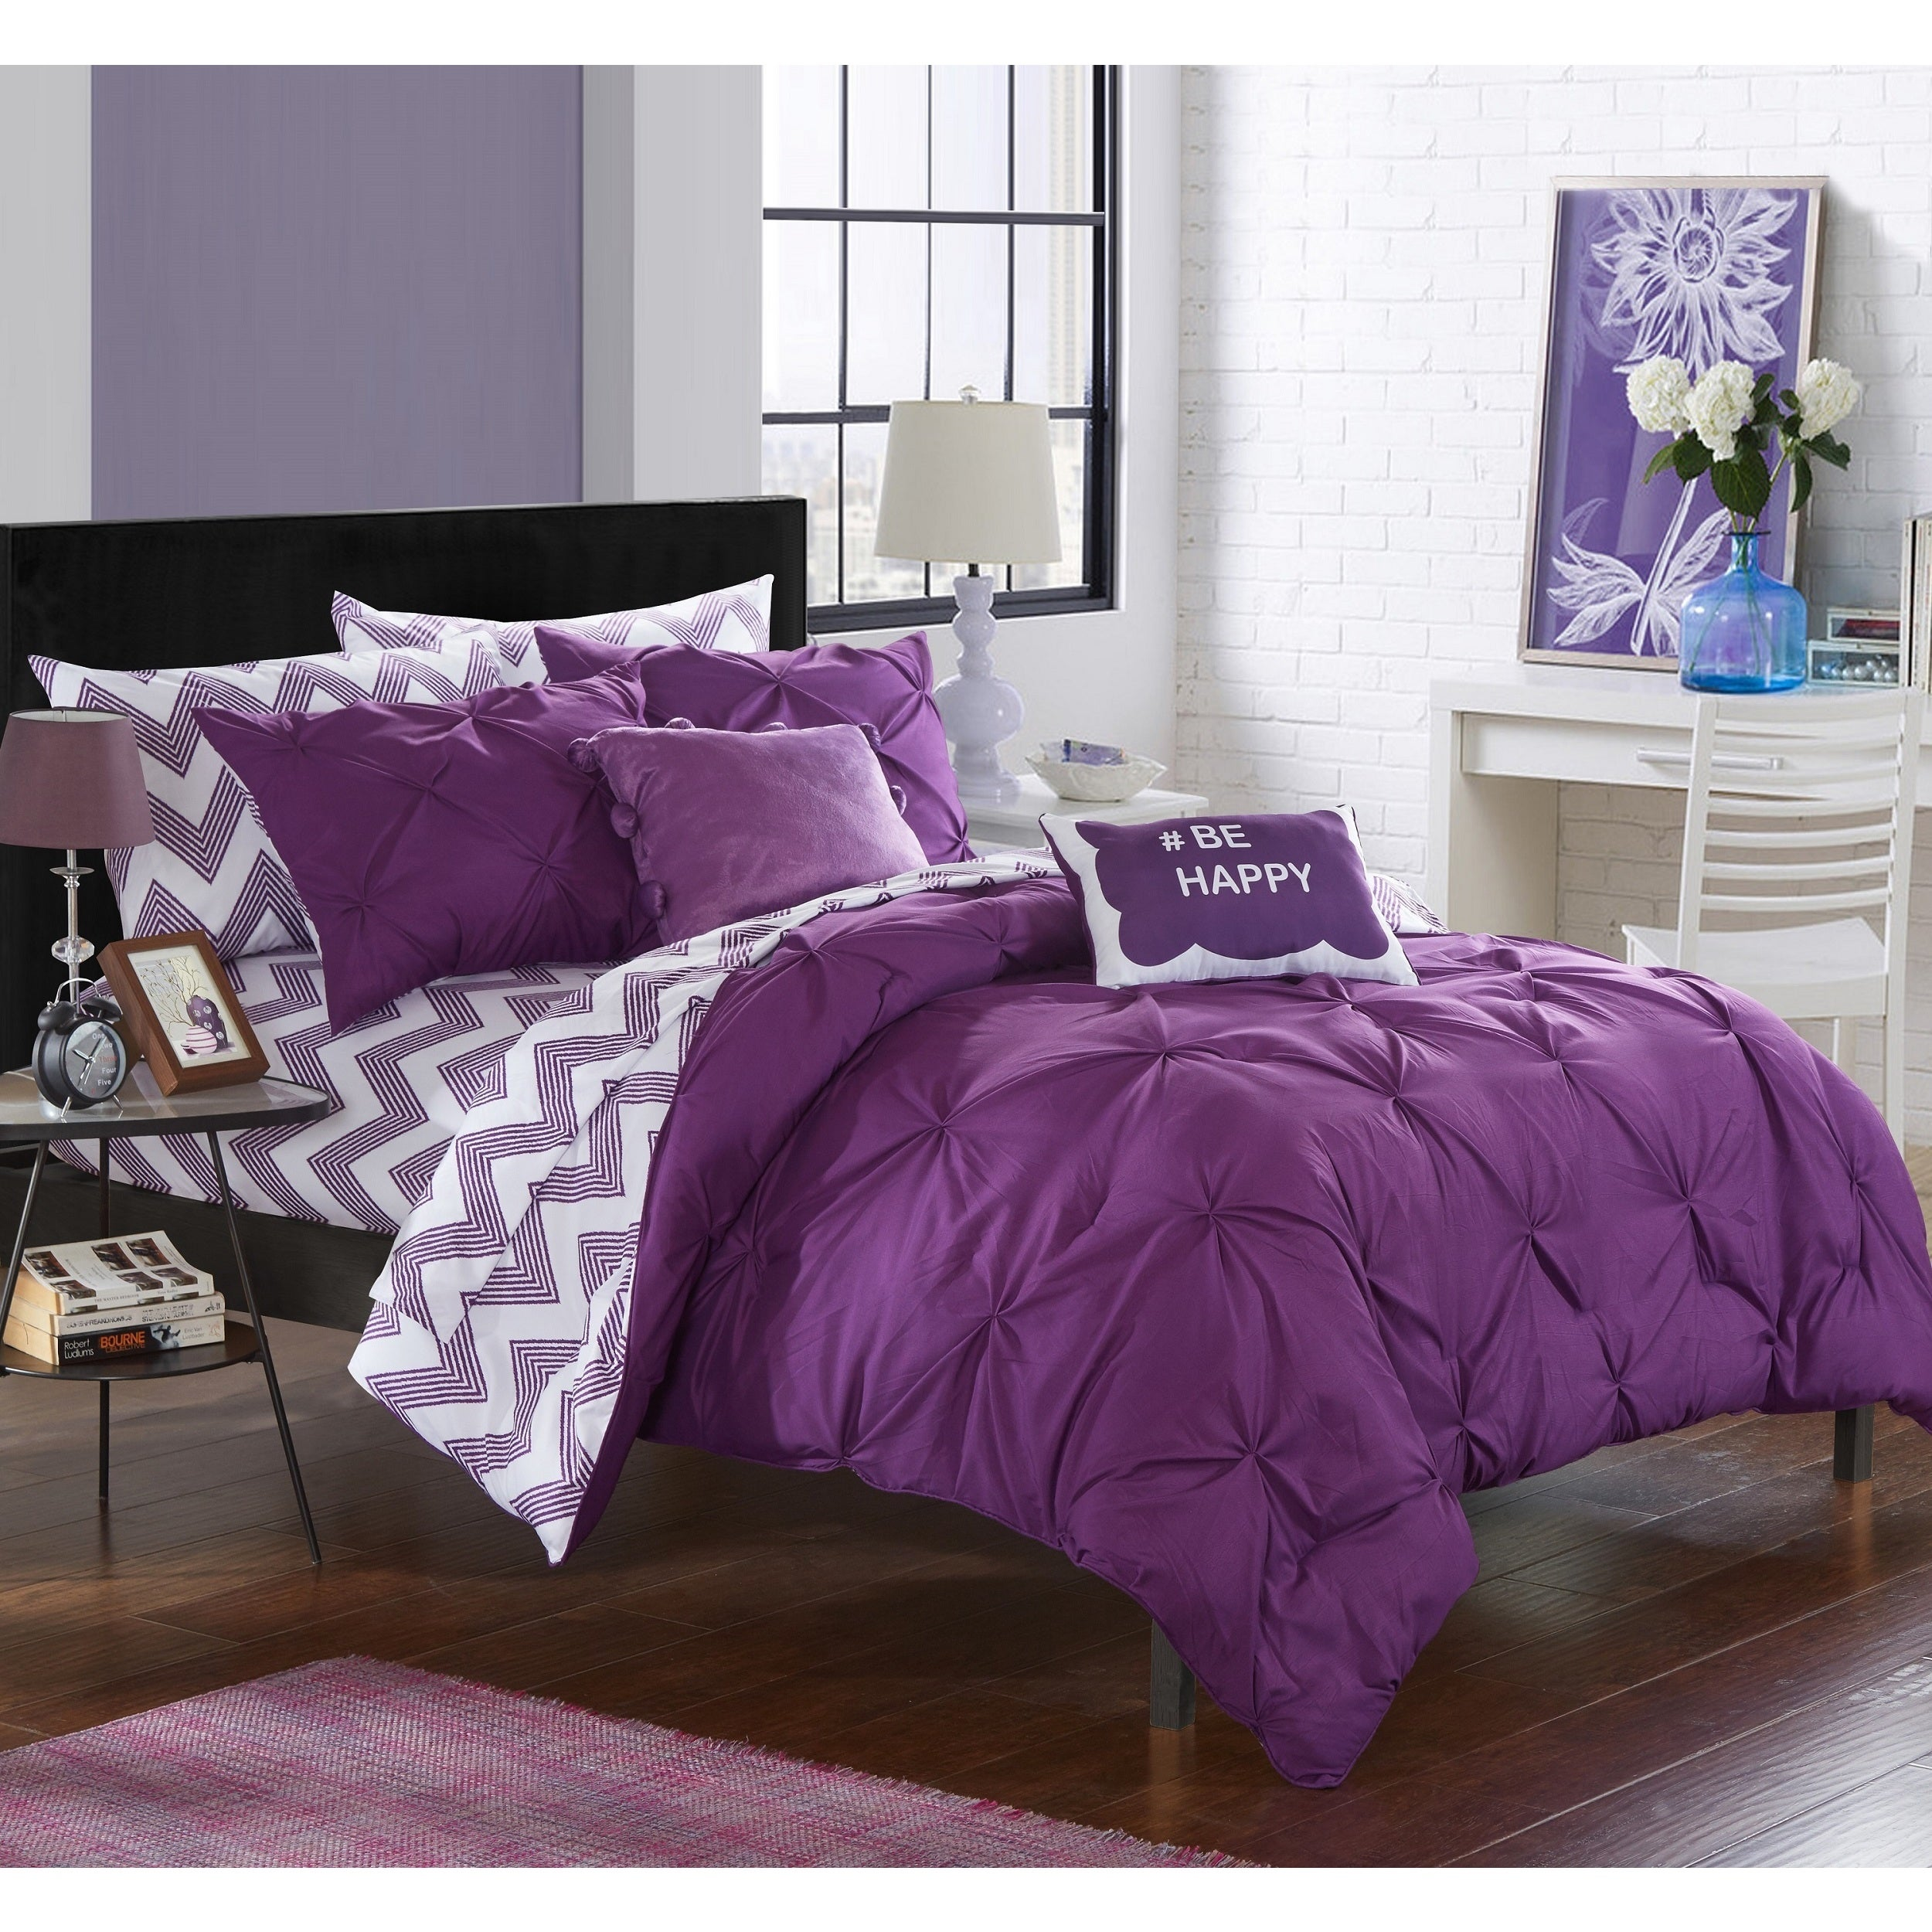 bluebellgray bedding nextag comforter by products at shopping compare twintwinxl set lilac wisteria options prices